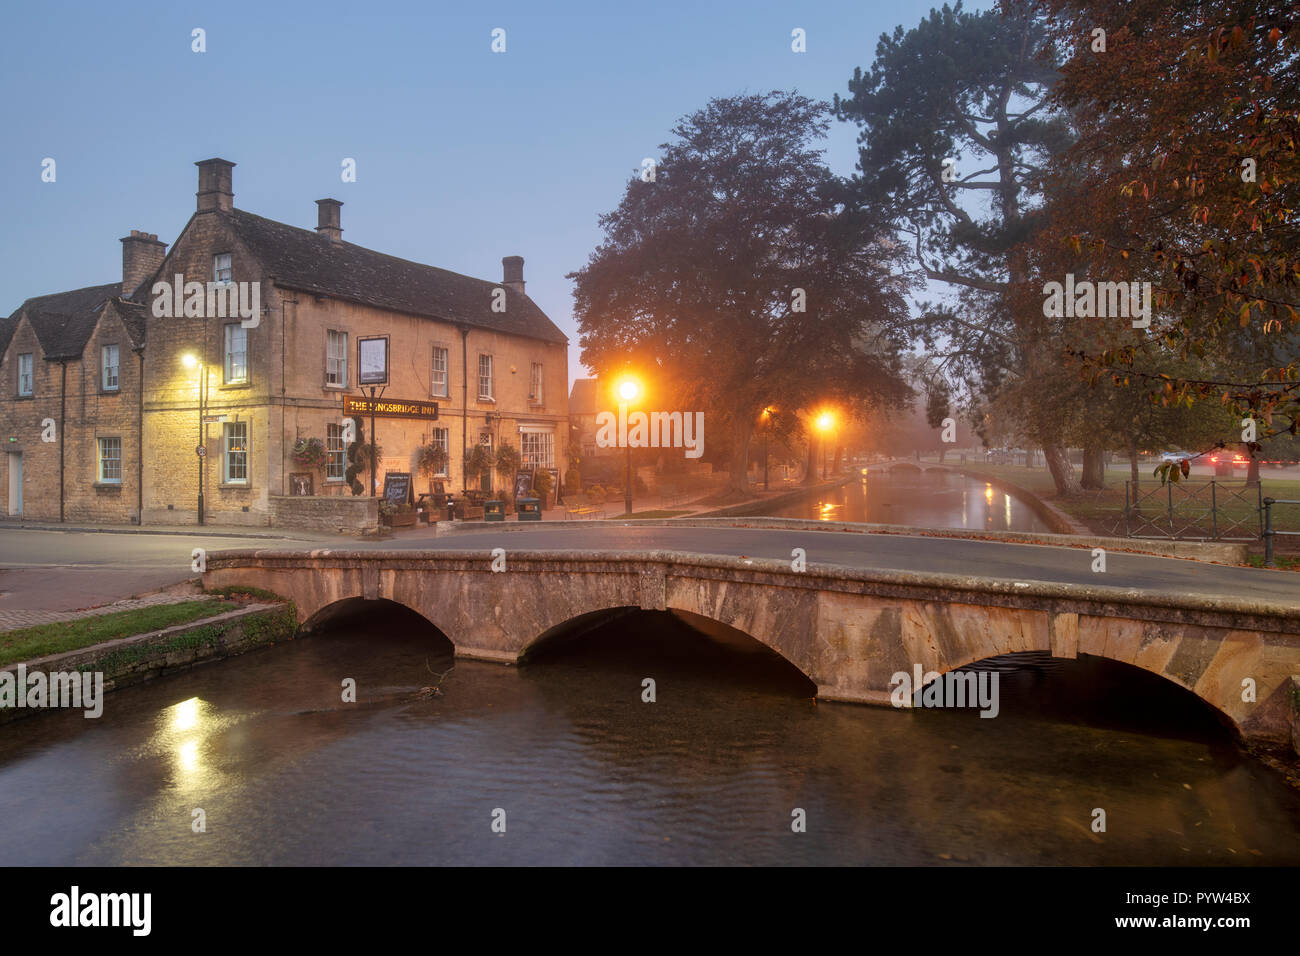 Mist and fog just after dawn in the cotswold village of Bourton on the Water in autumn. Bourton on the Water, Cotswolds, Gloucestershire, England Stock Photo